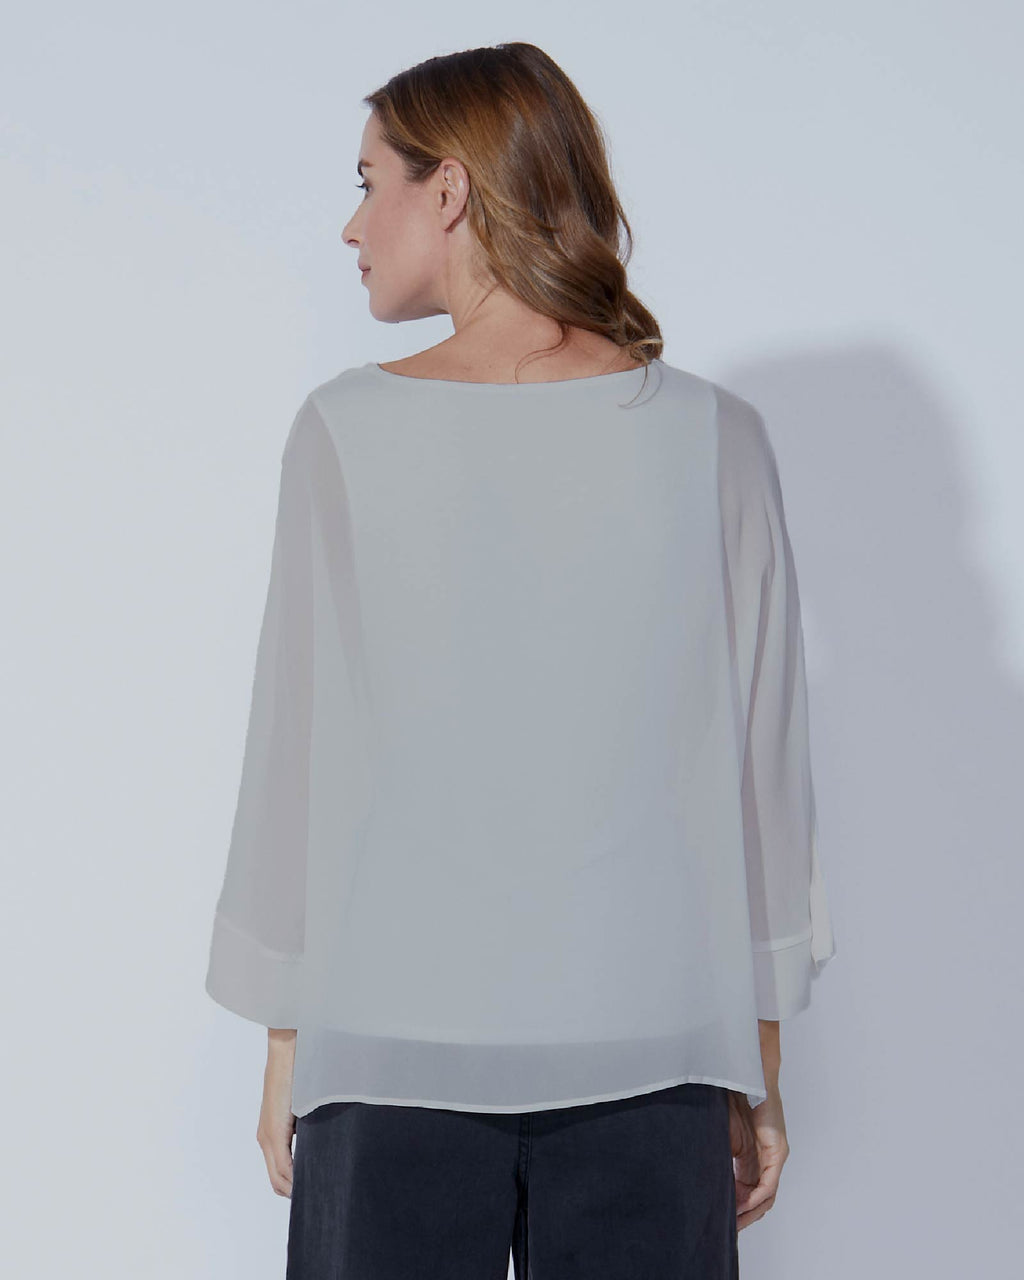 Fate + Becker The Willow Top - Silver Grey | Buy Online at Weekends